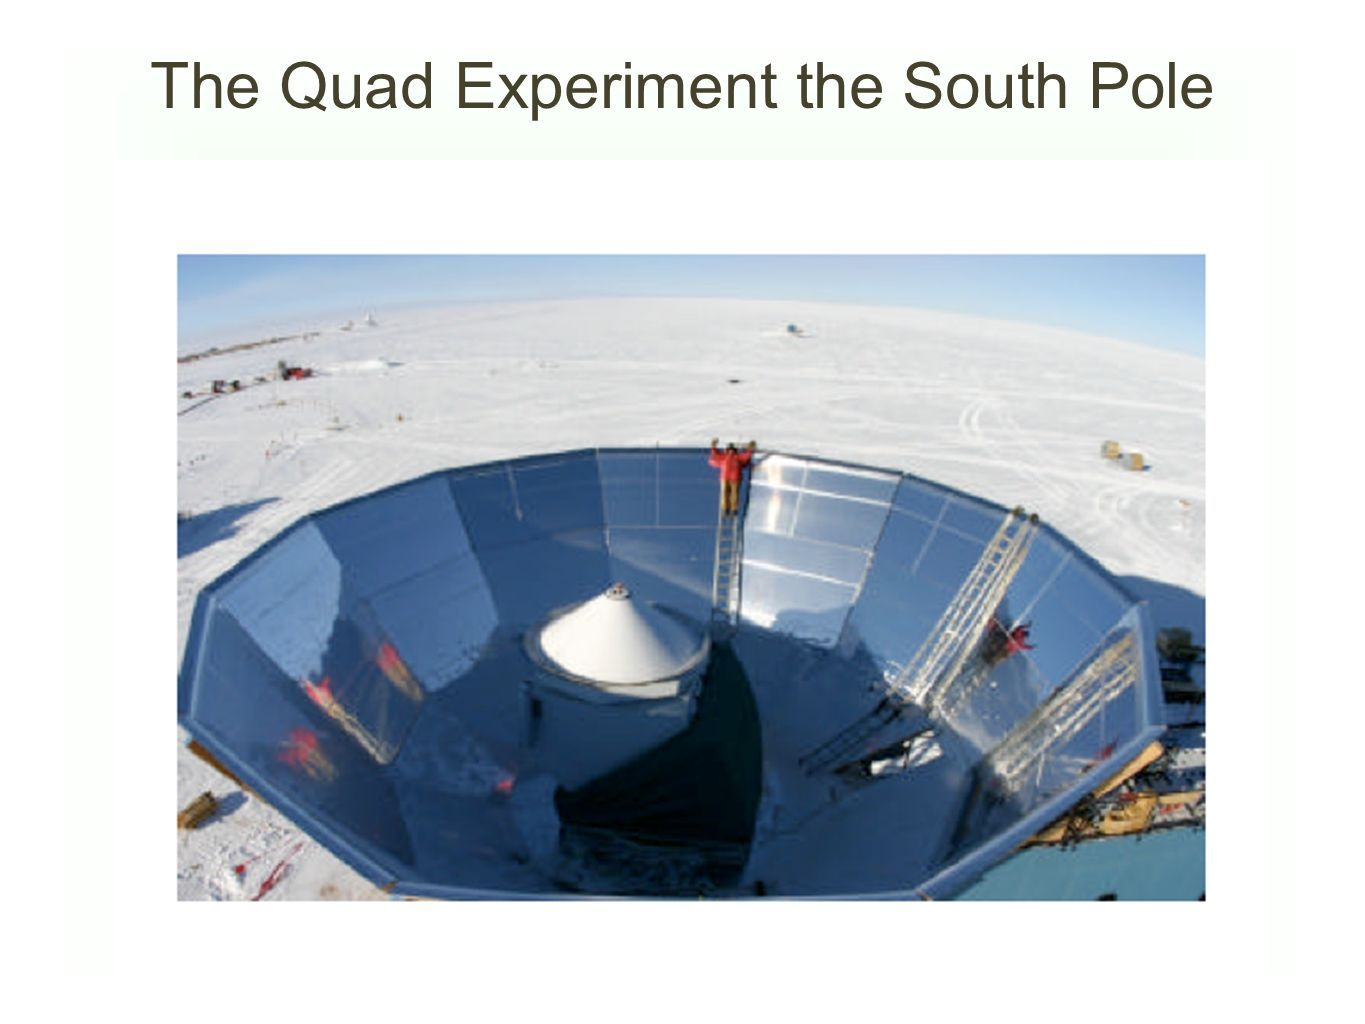 The Quad Experiment the South Pole